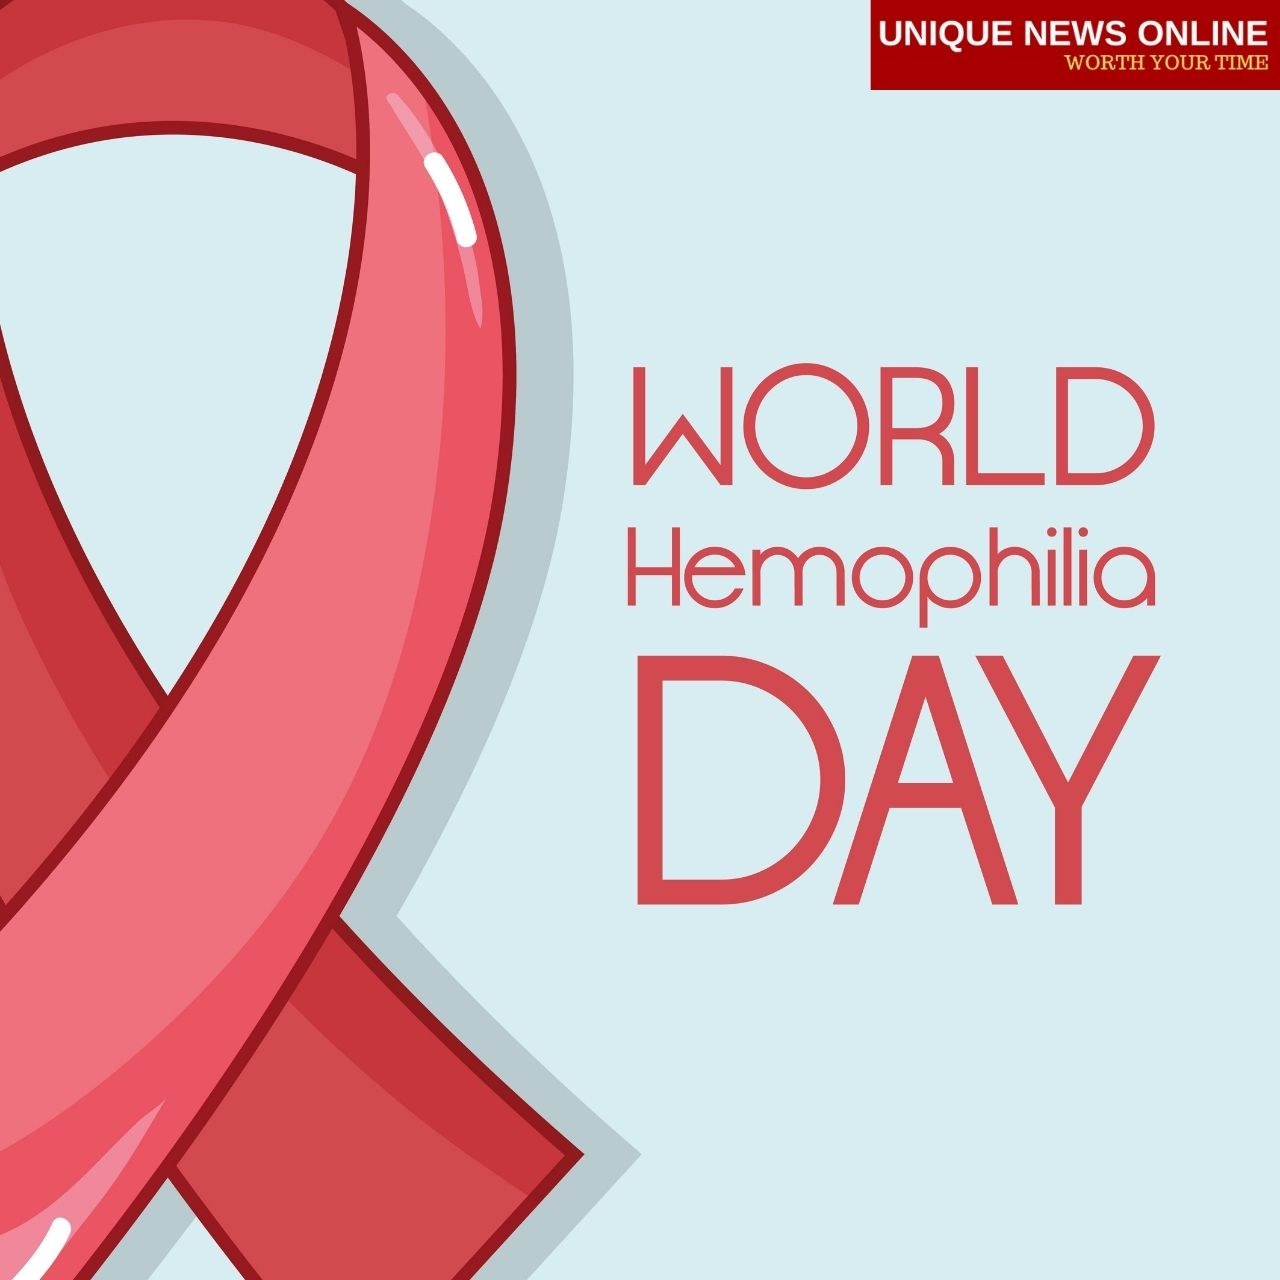 World Hemophilia Day 2021 Wishes, Messages, Greetings, Quotes, and Images